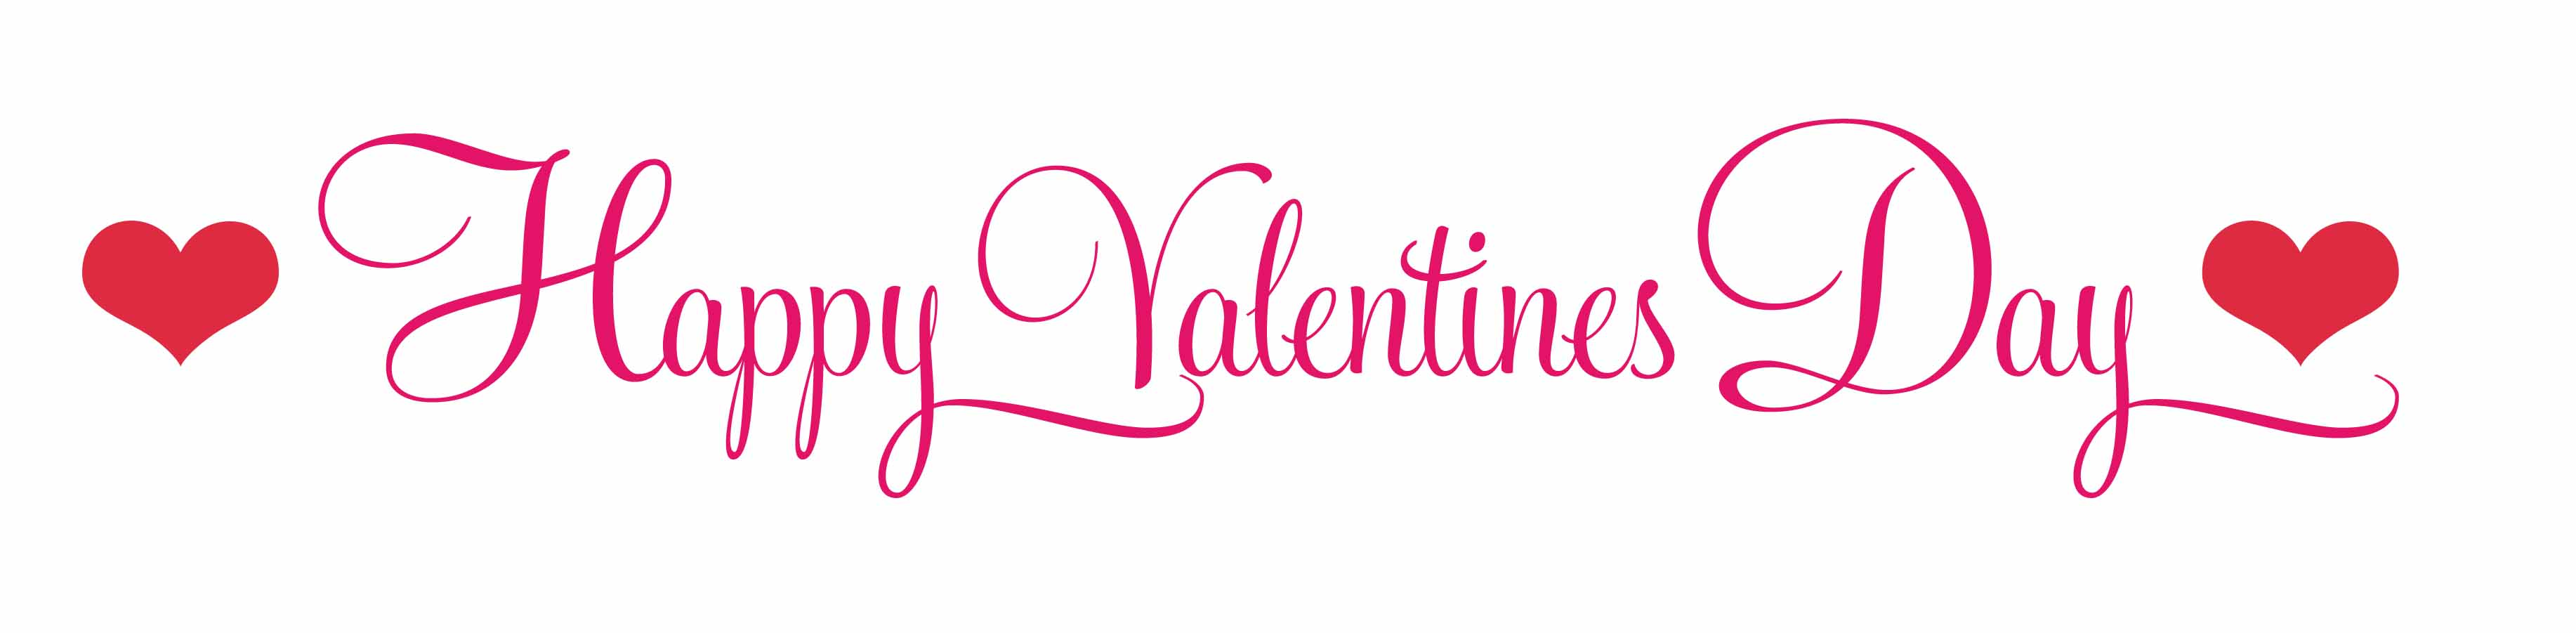 Valentines Day Clipart Banner - Clipgrou-valentines day clipart banner - Clipground-16